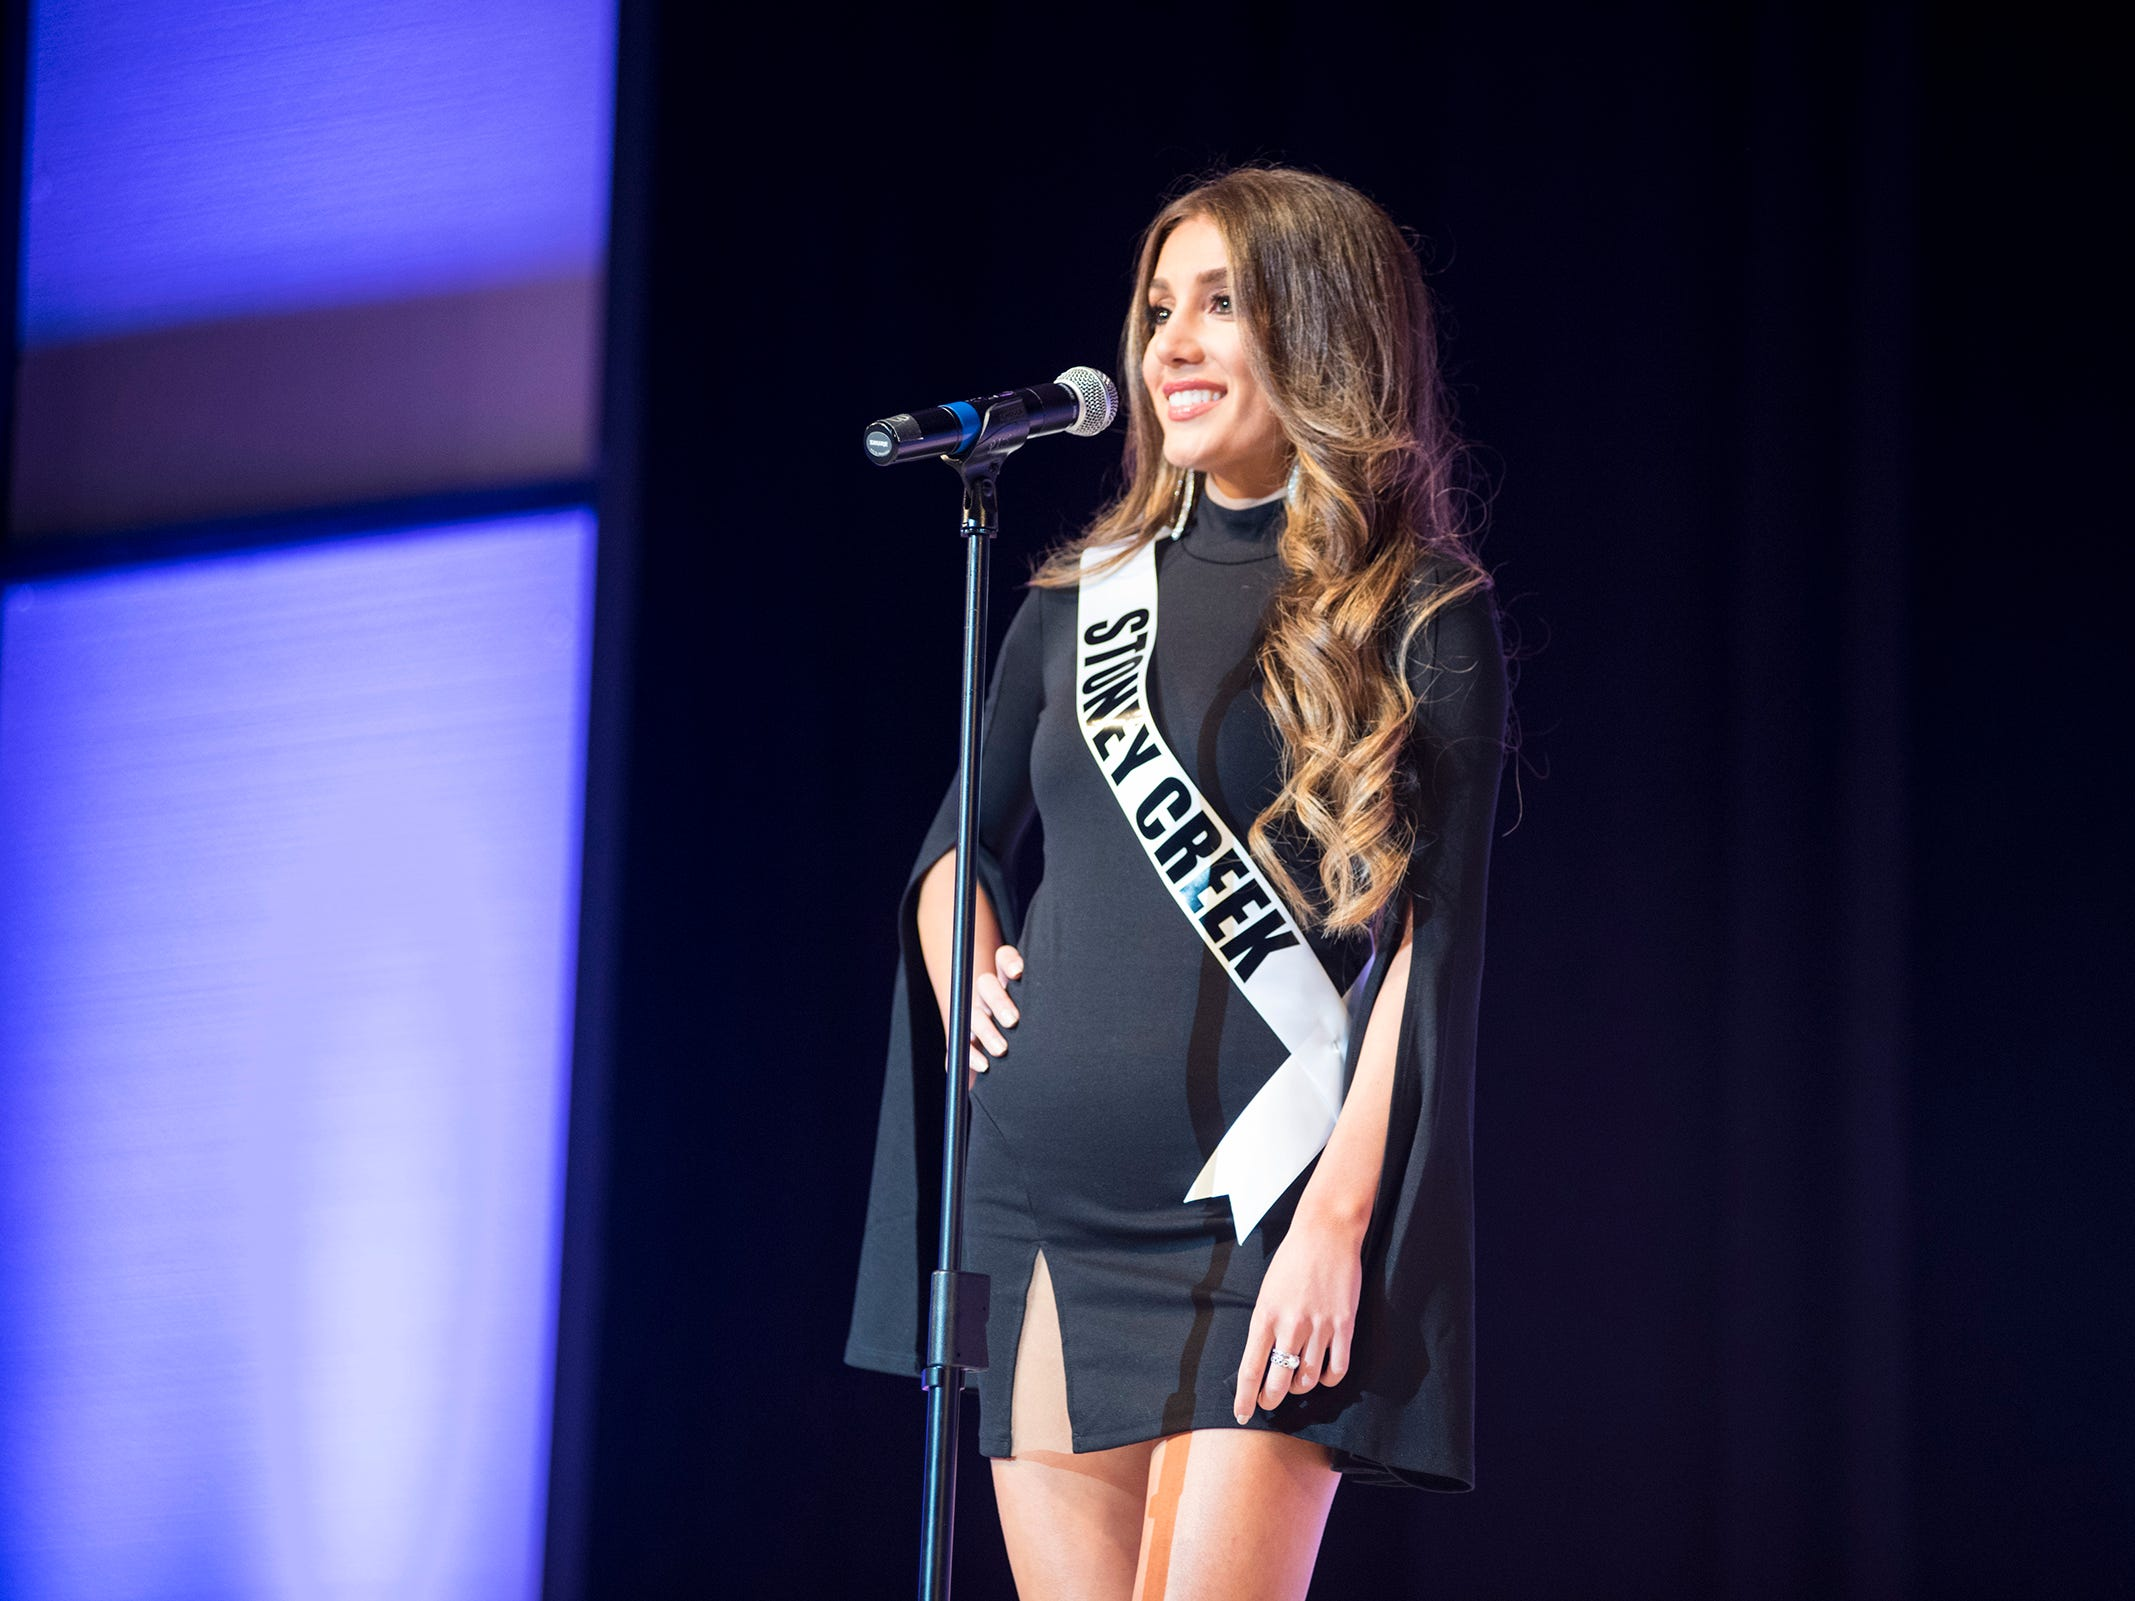 Miss Stoney Creek Mira Kasmikha introduces herself Saturday, Sept. 22, 2018 at the start of the Miss Michigan USA competition at McMorran Theater.